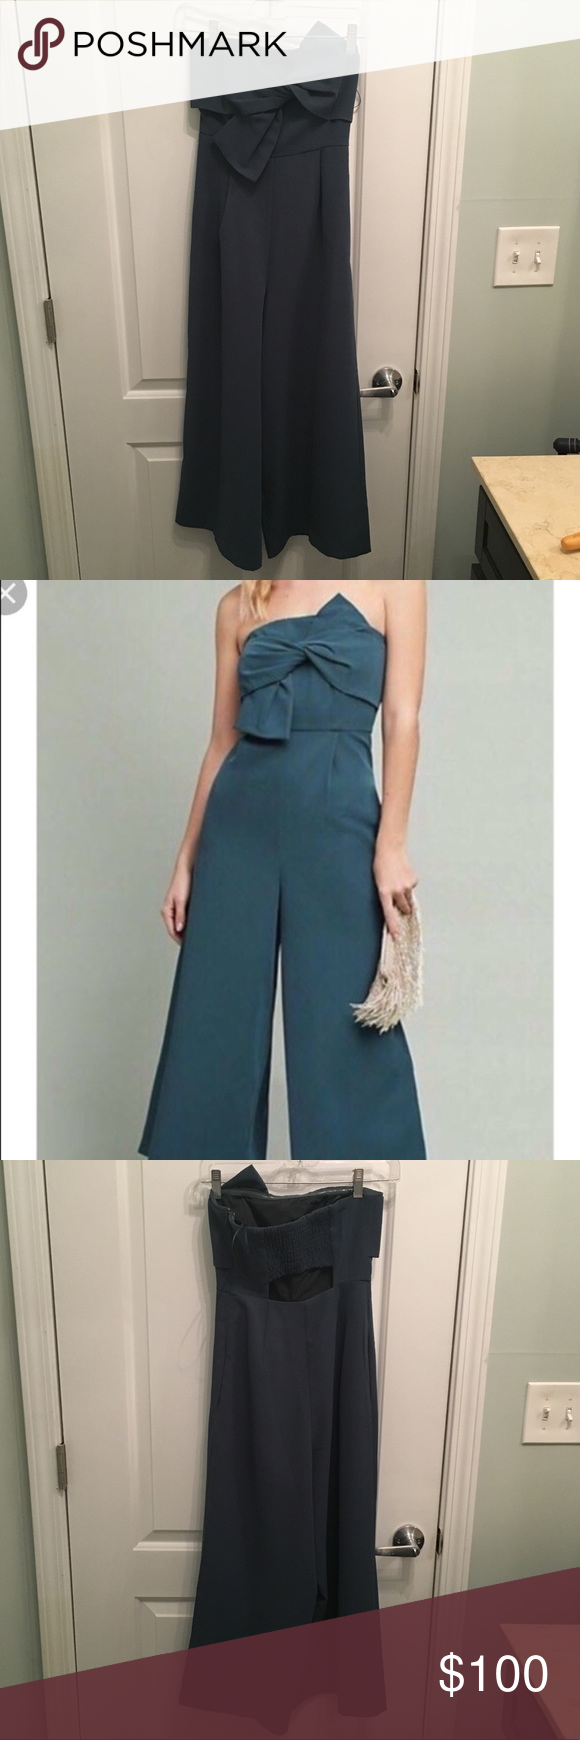 67db28aaeada ANTHROPOLOGIE Hailee C Jumpsuit - Green WORN ONCE! This jumpsuit is in  perfect condition